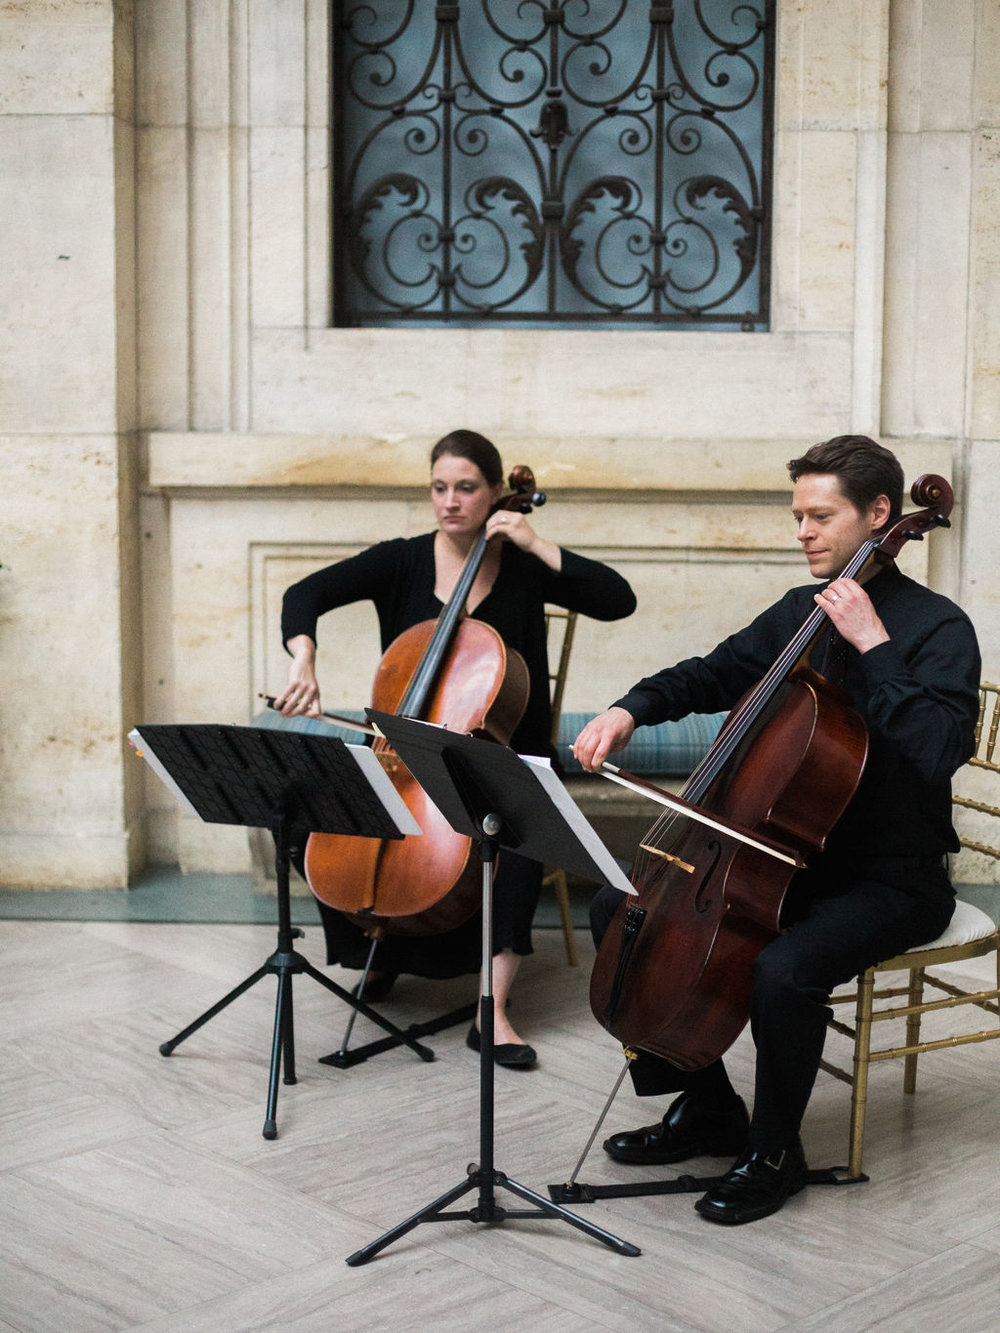 Cello Duet performing prelude music at the Detroit Institute of Arts as captured by  K.R. Moreno